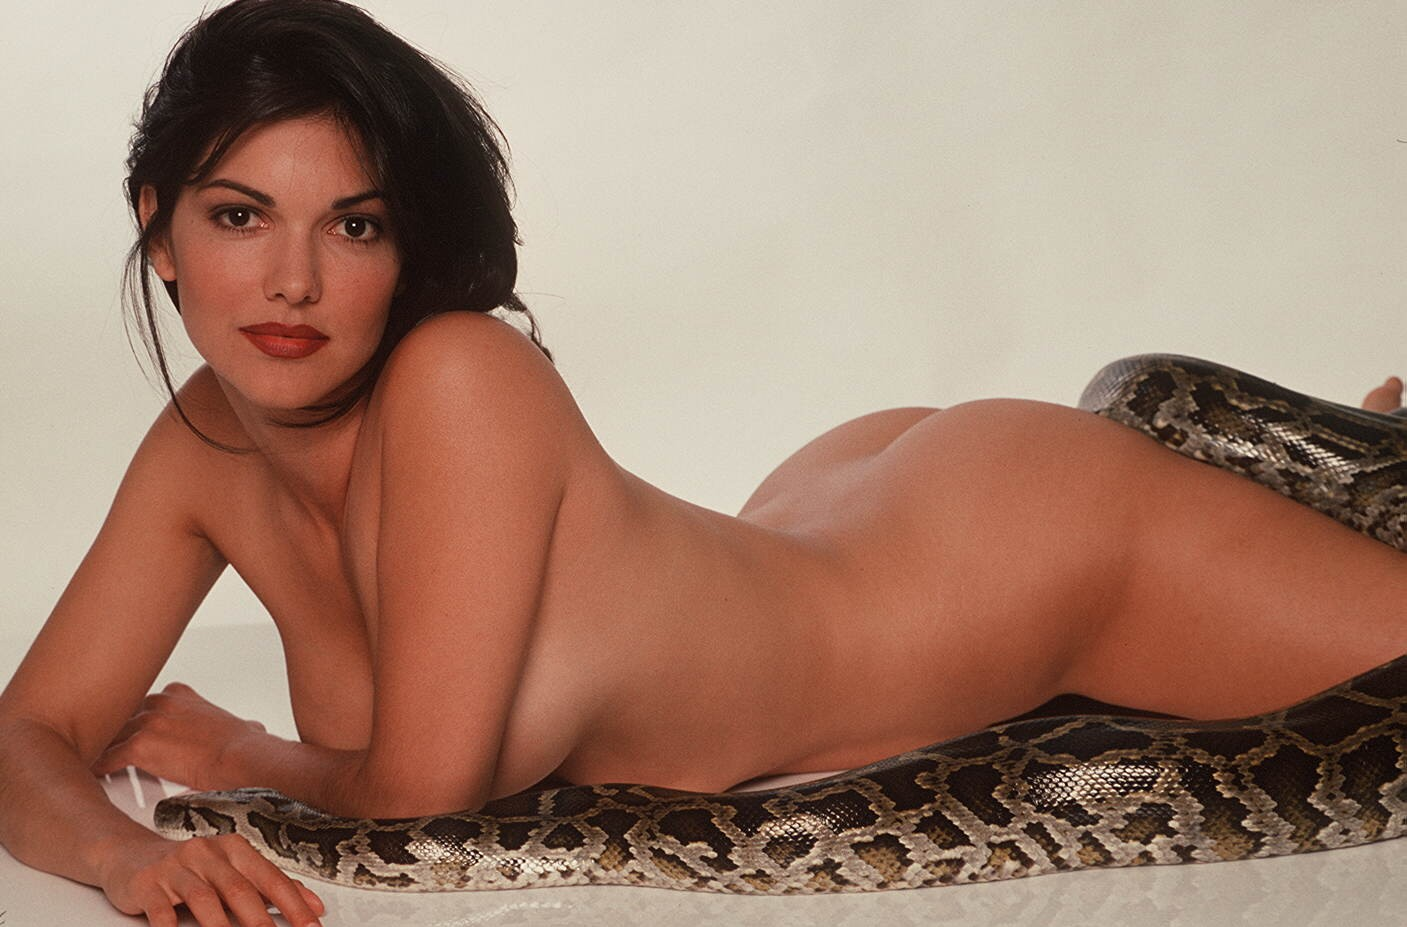 Laura harring nude, naked